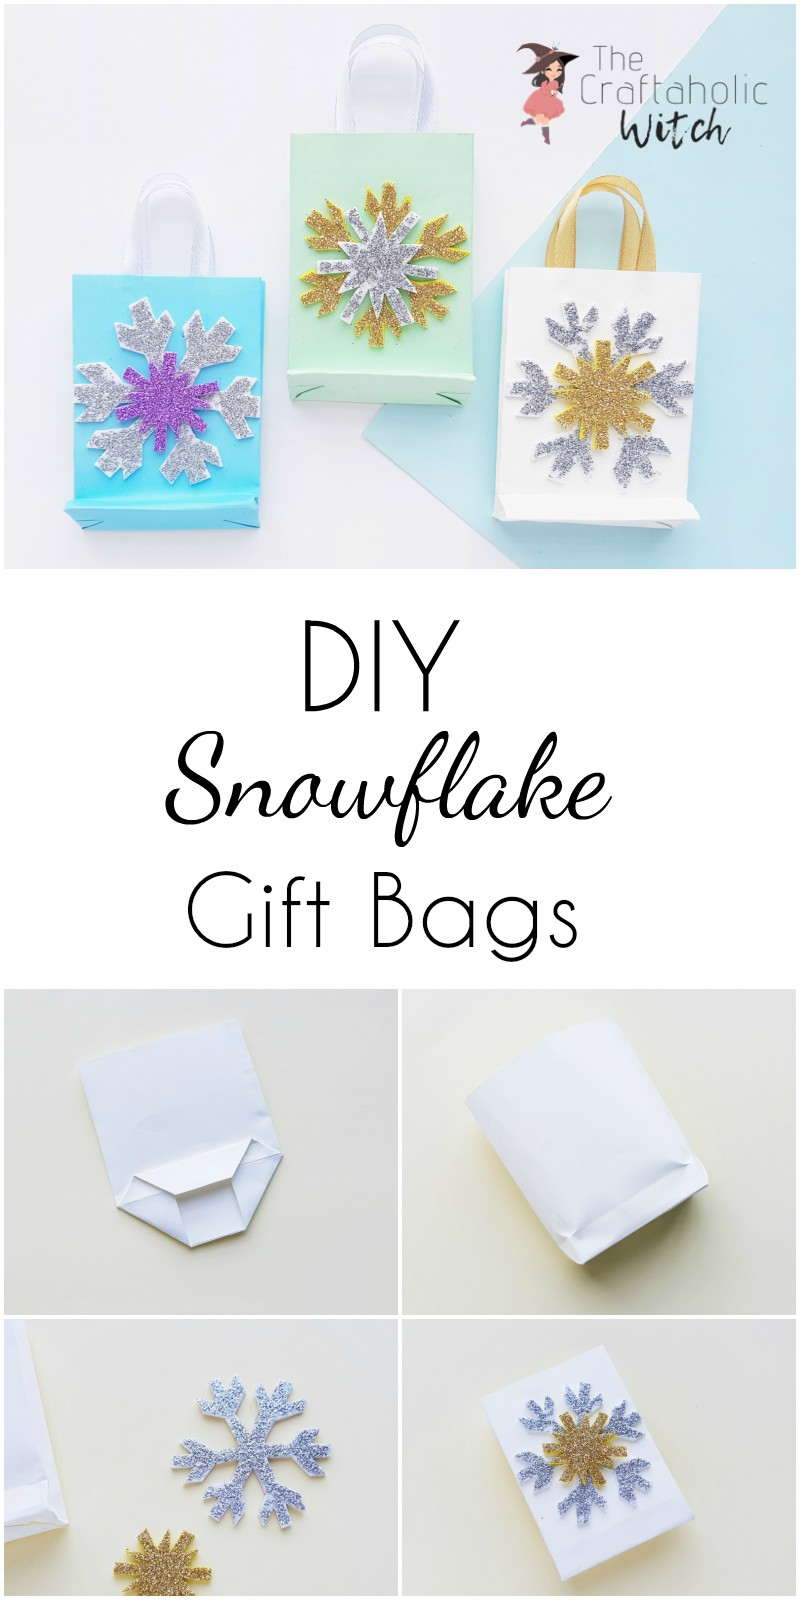 DIY Gift Bags! Let's Make a Customised Snowflake Gift Bag